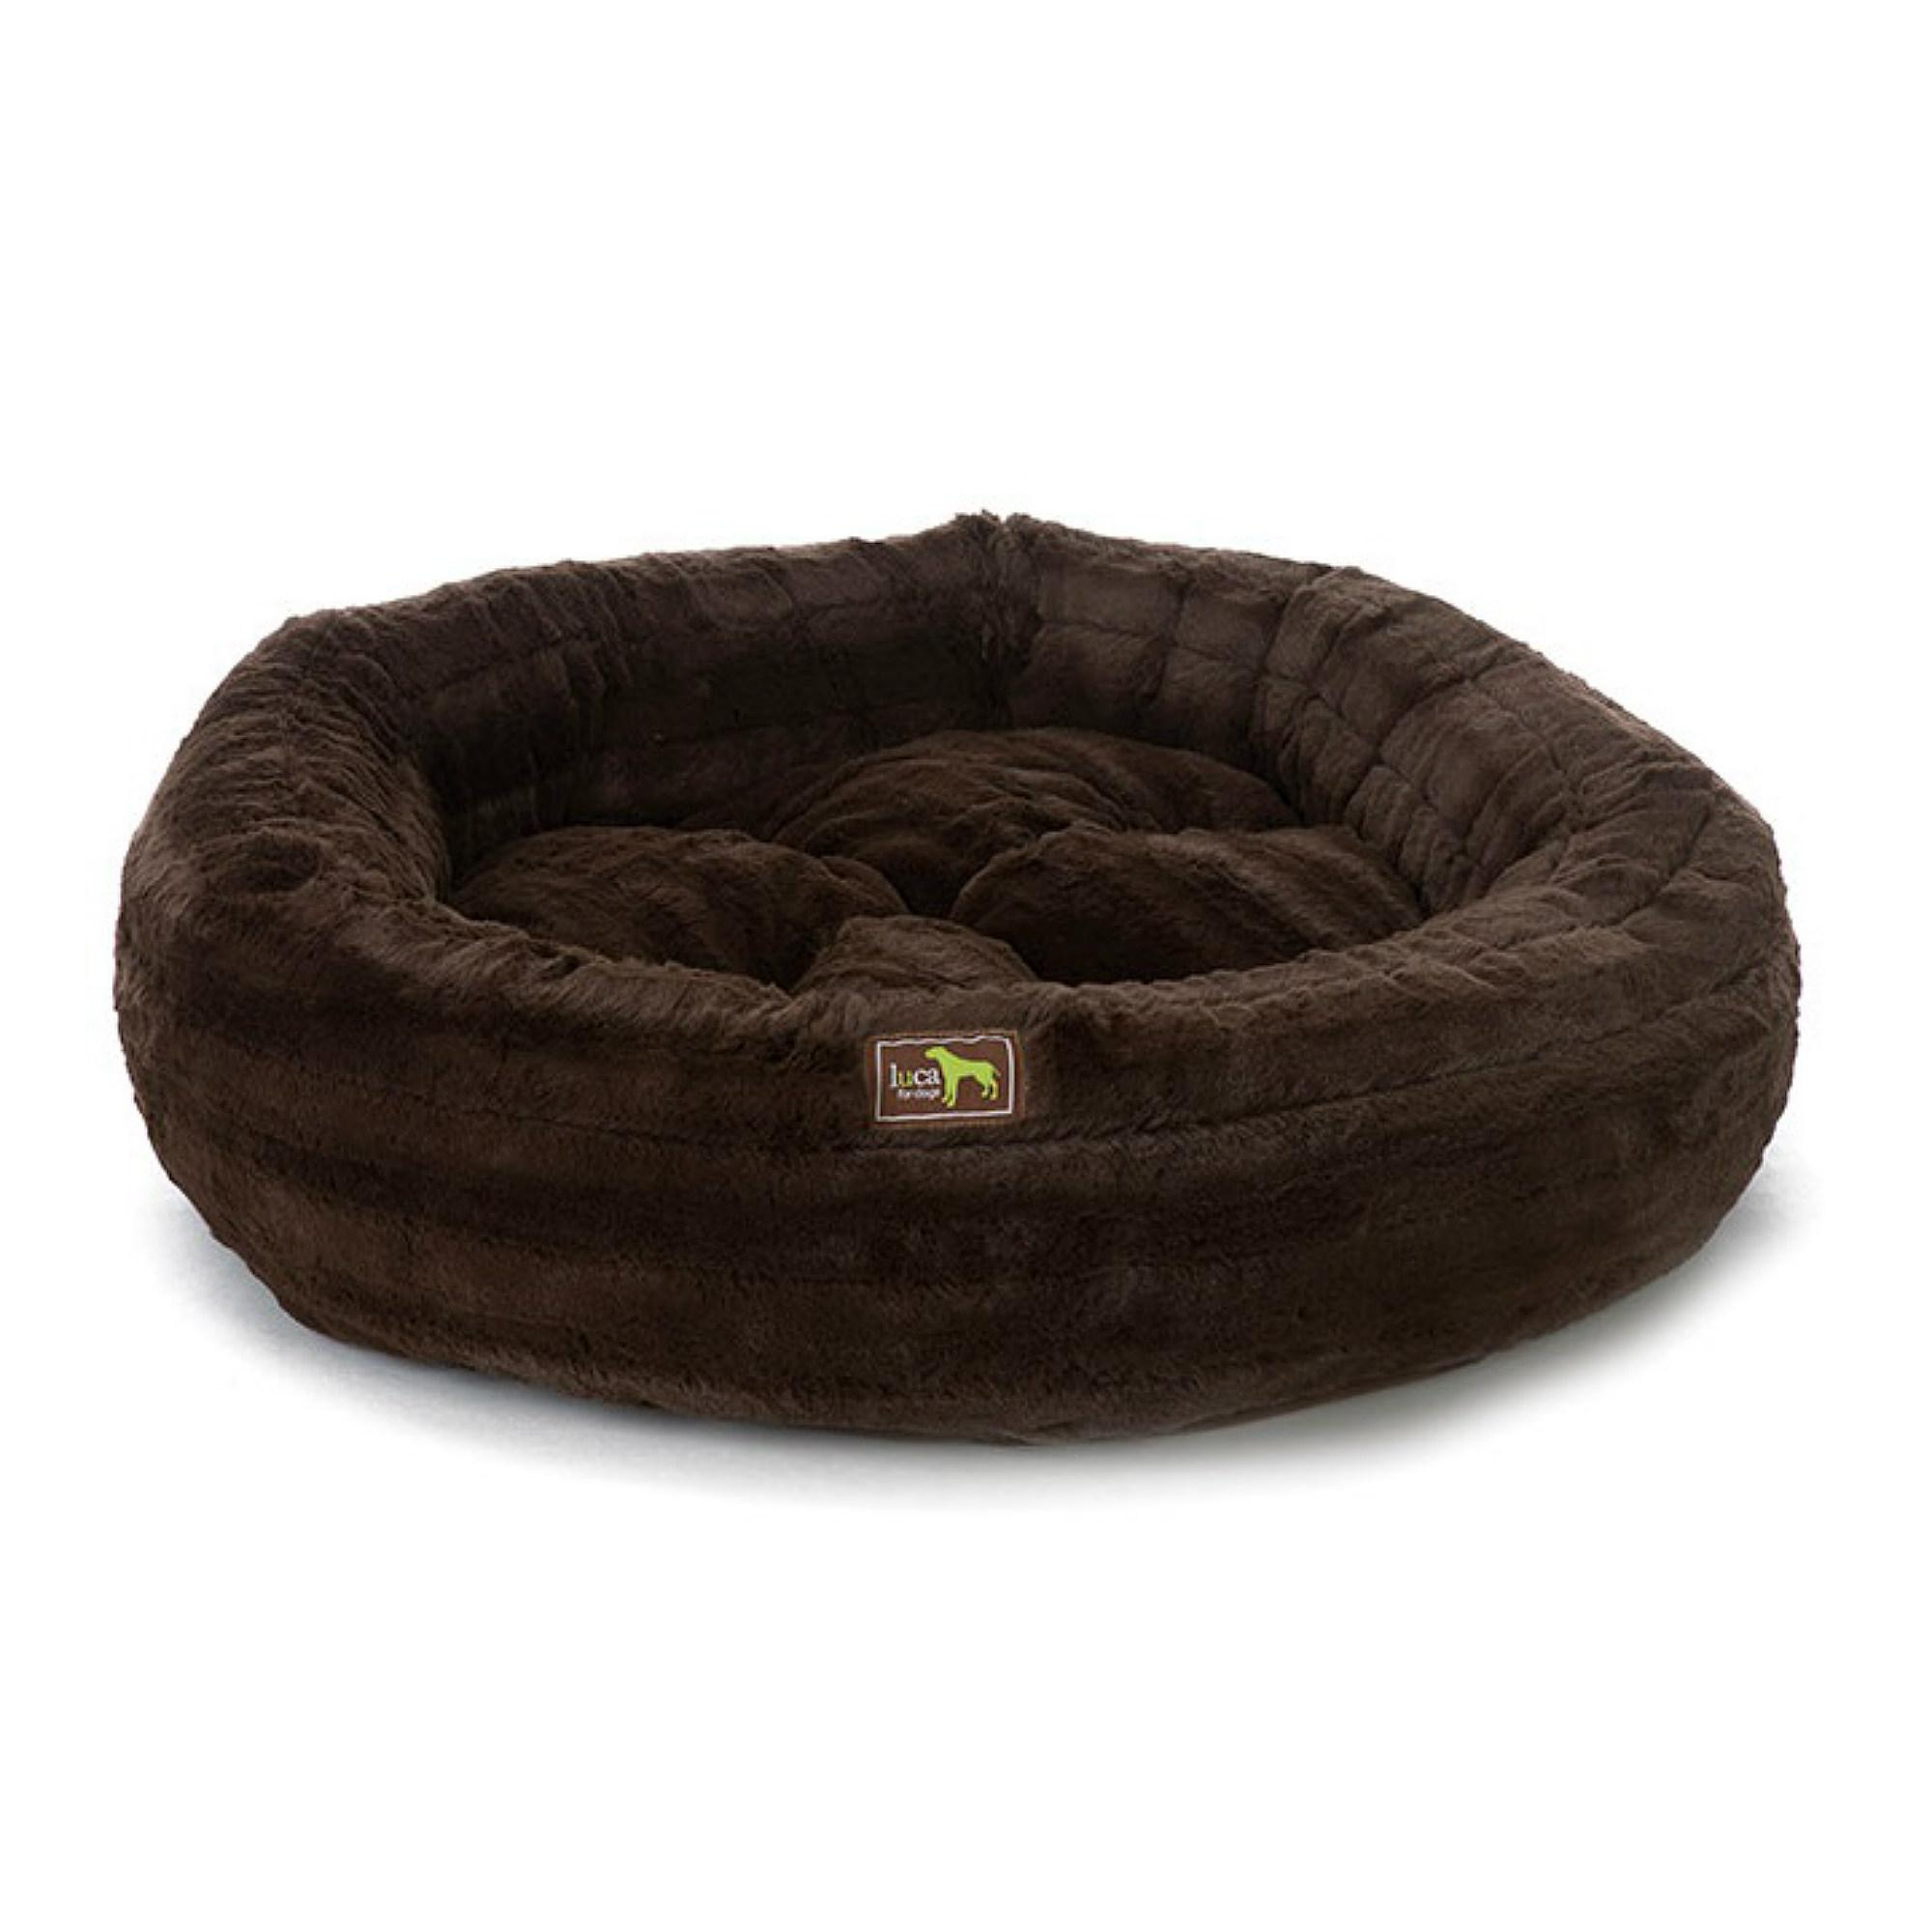 Luca Chinchilla Nest Plush Dog Bed - Chocolate